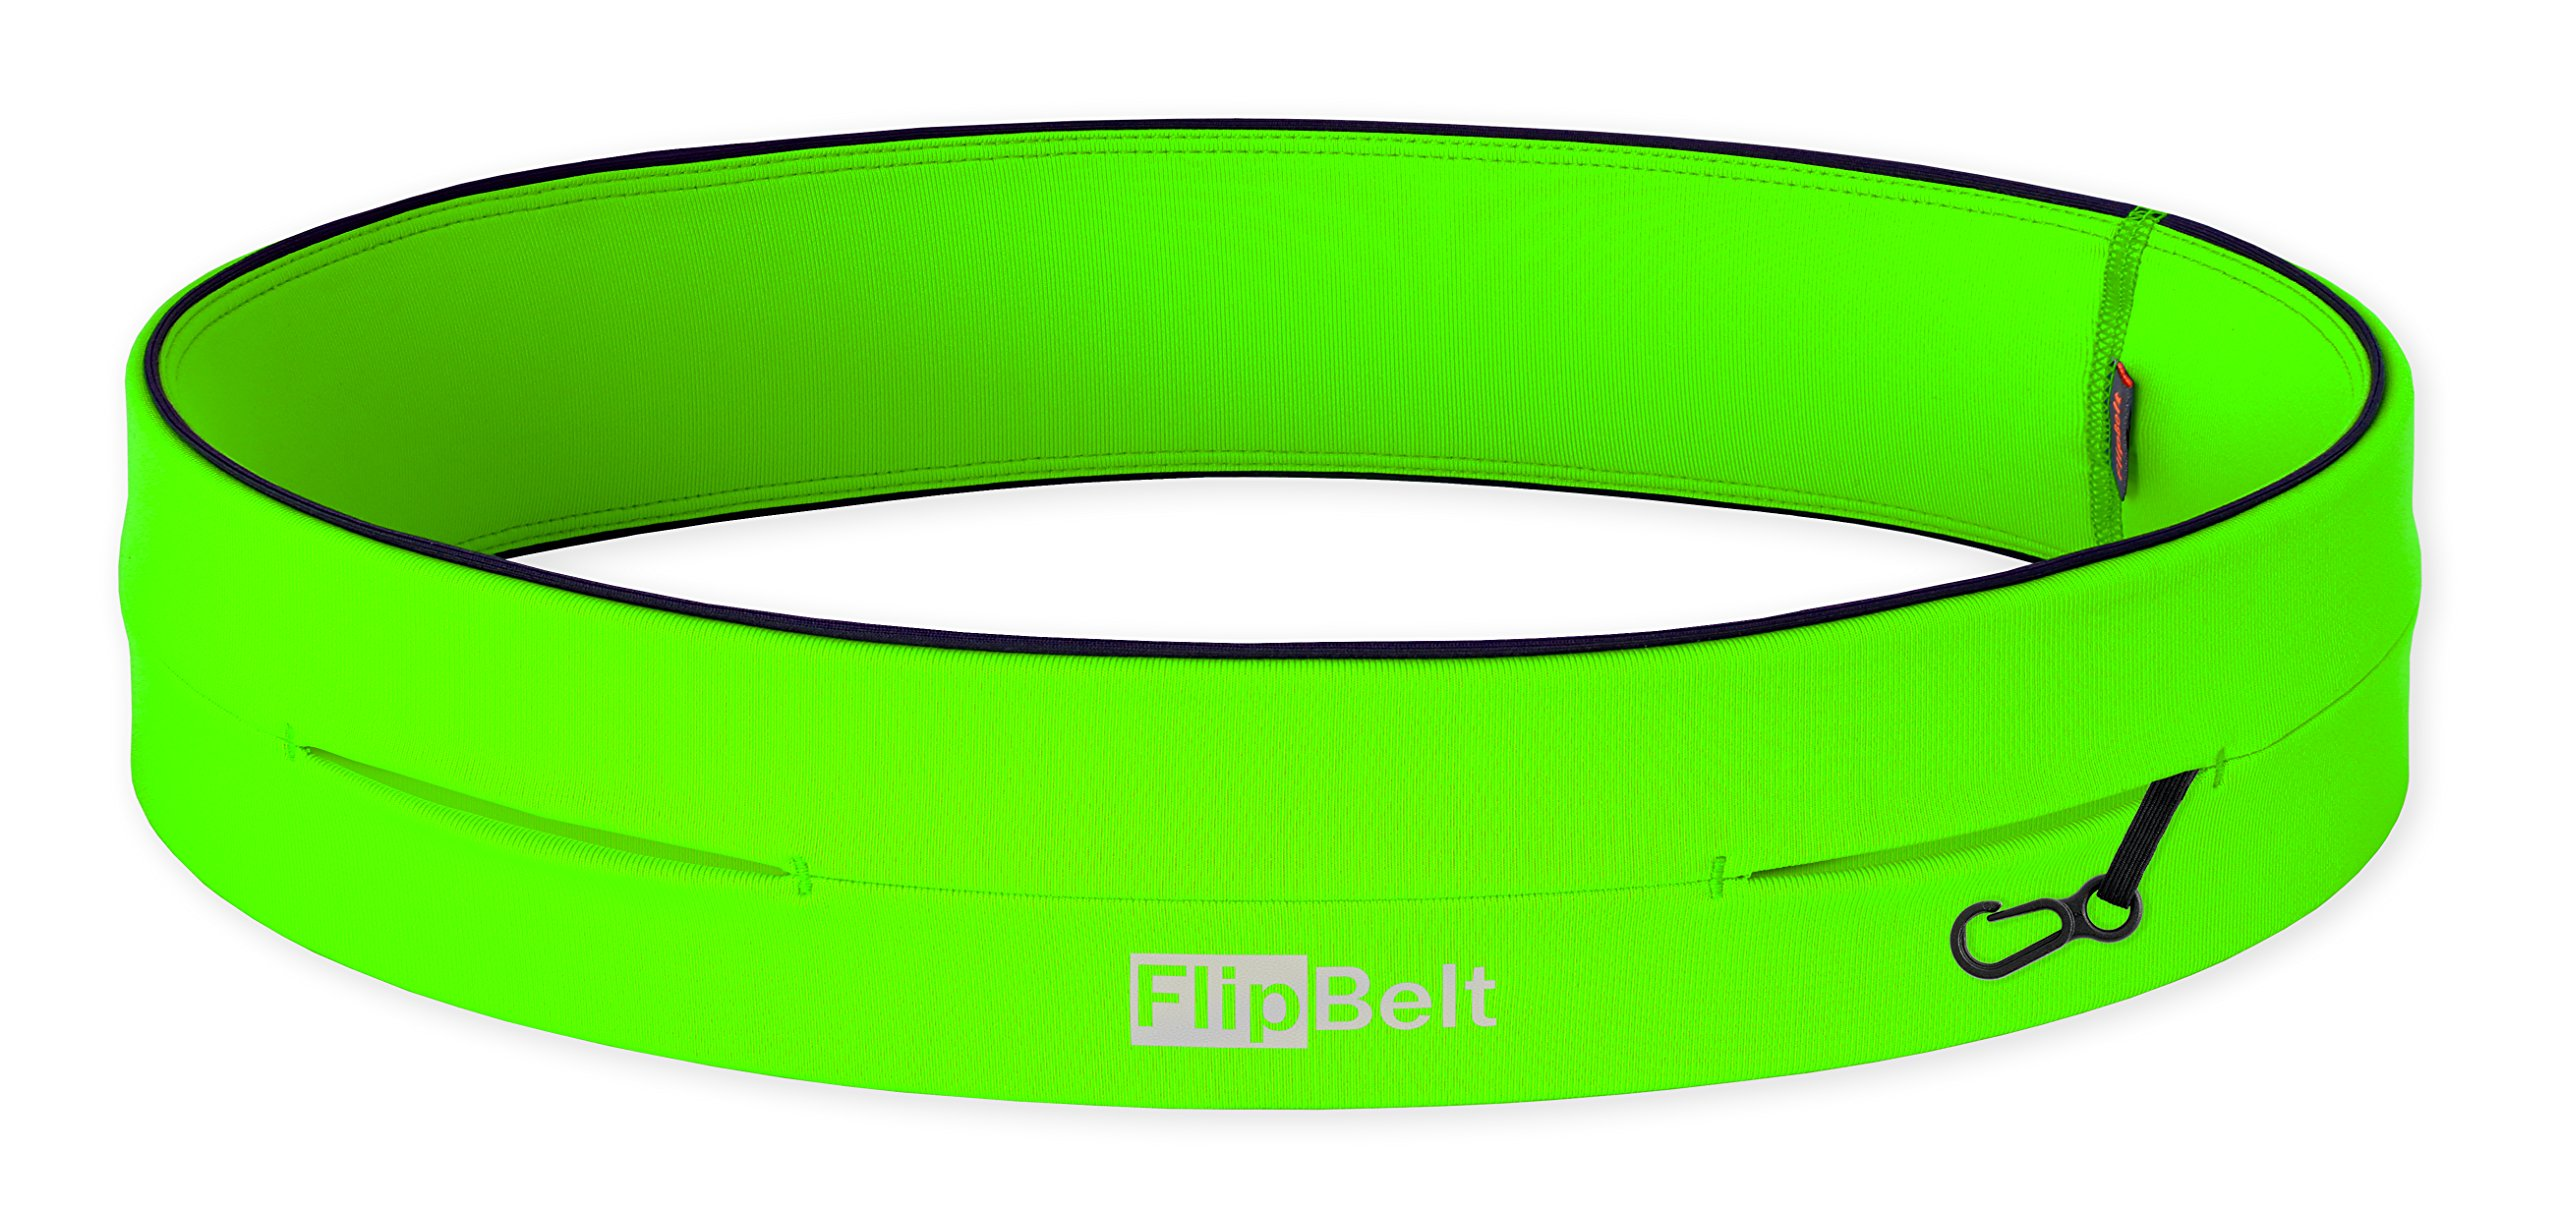 FlipBelt Level Terrain Waist Pouch, Neon Green, X-Small/22-25 by FlipBelt